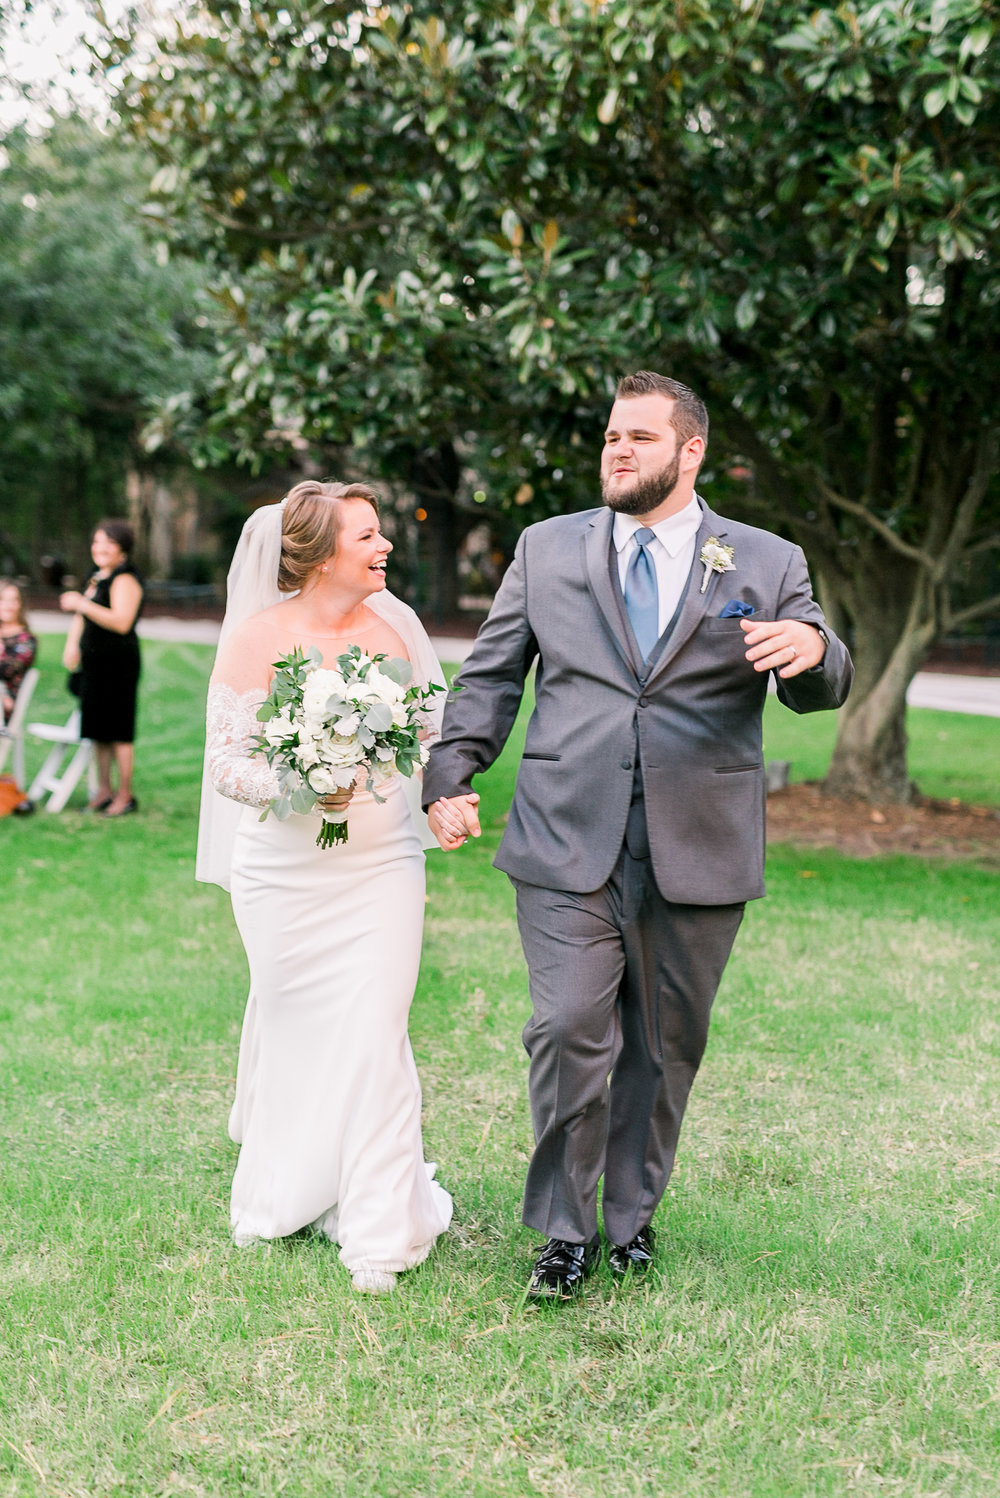 Fall wedding at the Houstonian, Just Married!